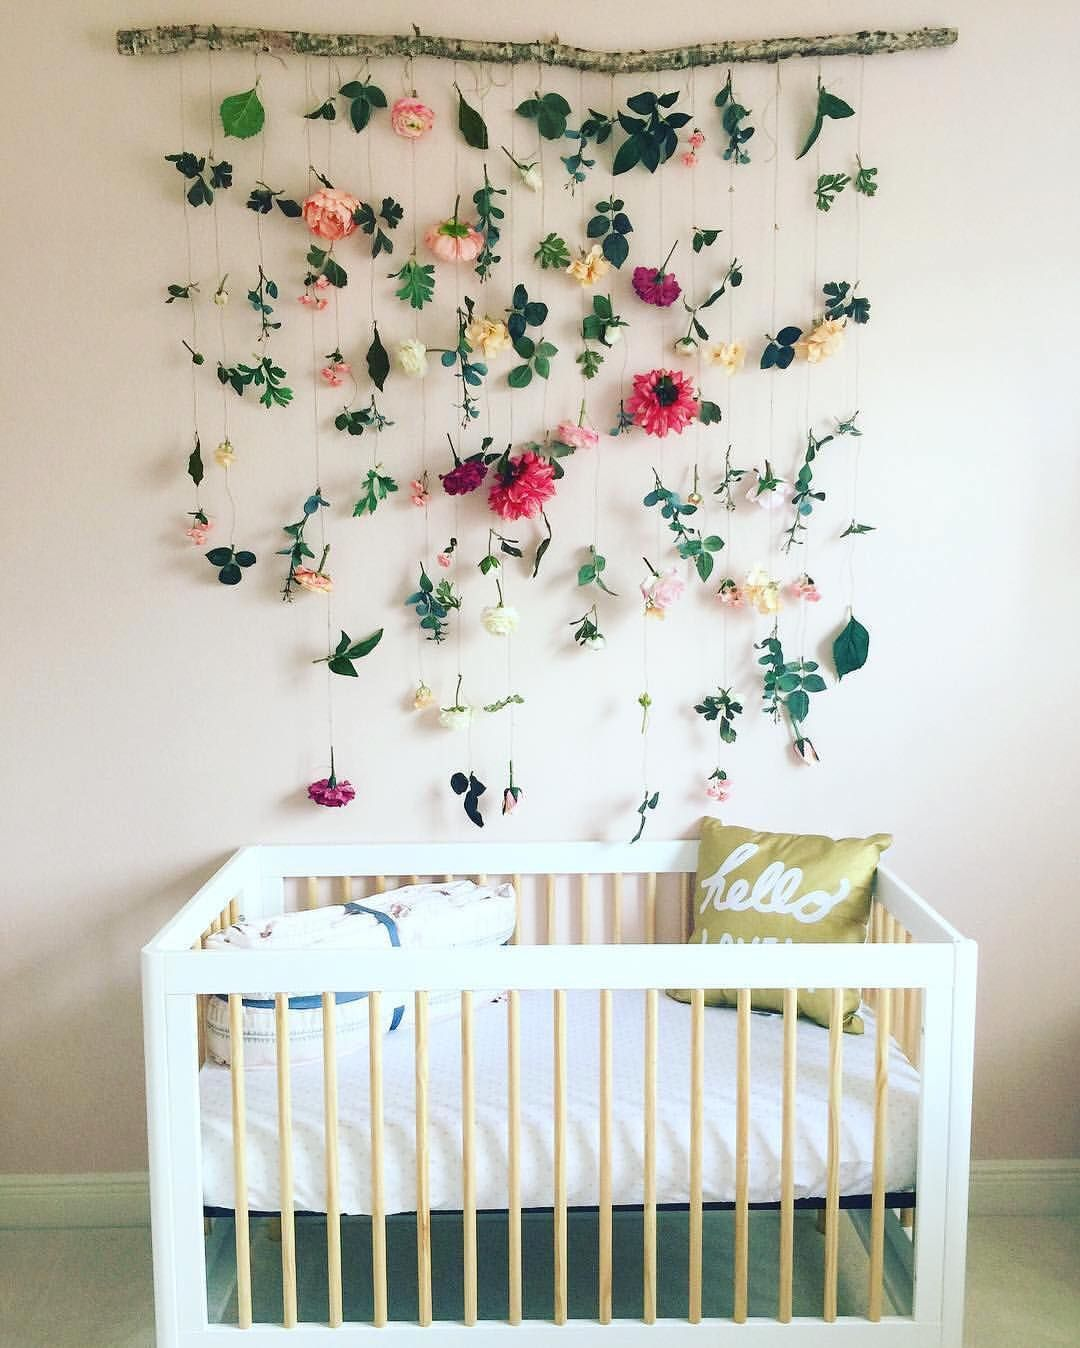 Simple Decorating Girl Nursery Design: Modern Nursery. Floral Nursery. DIY. Handmade. Colorful